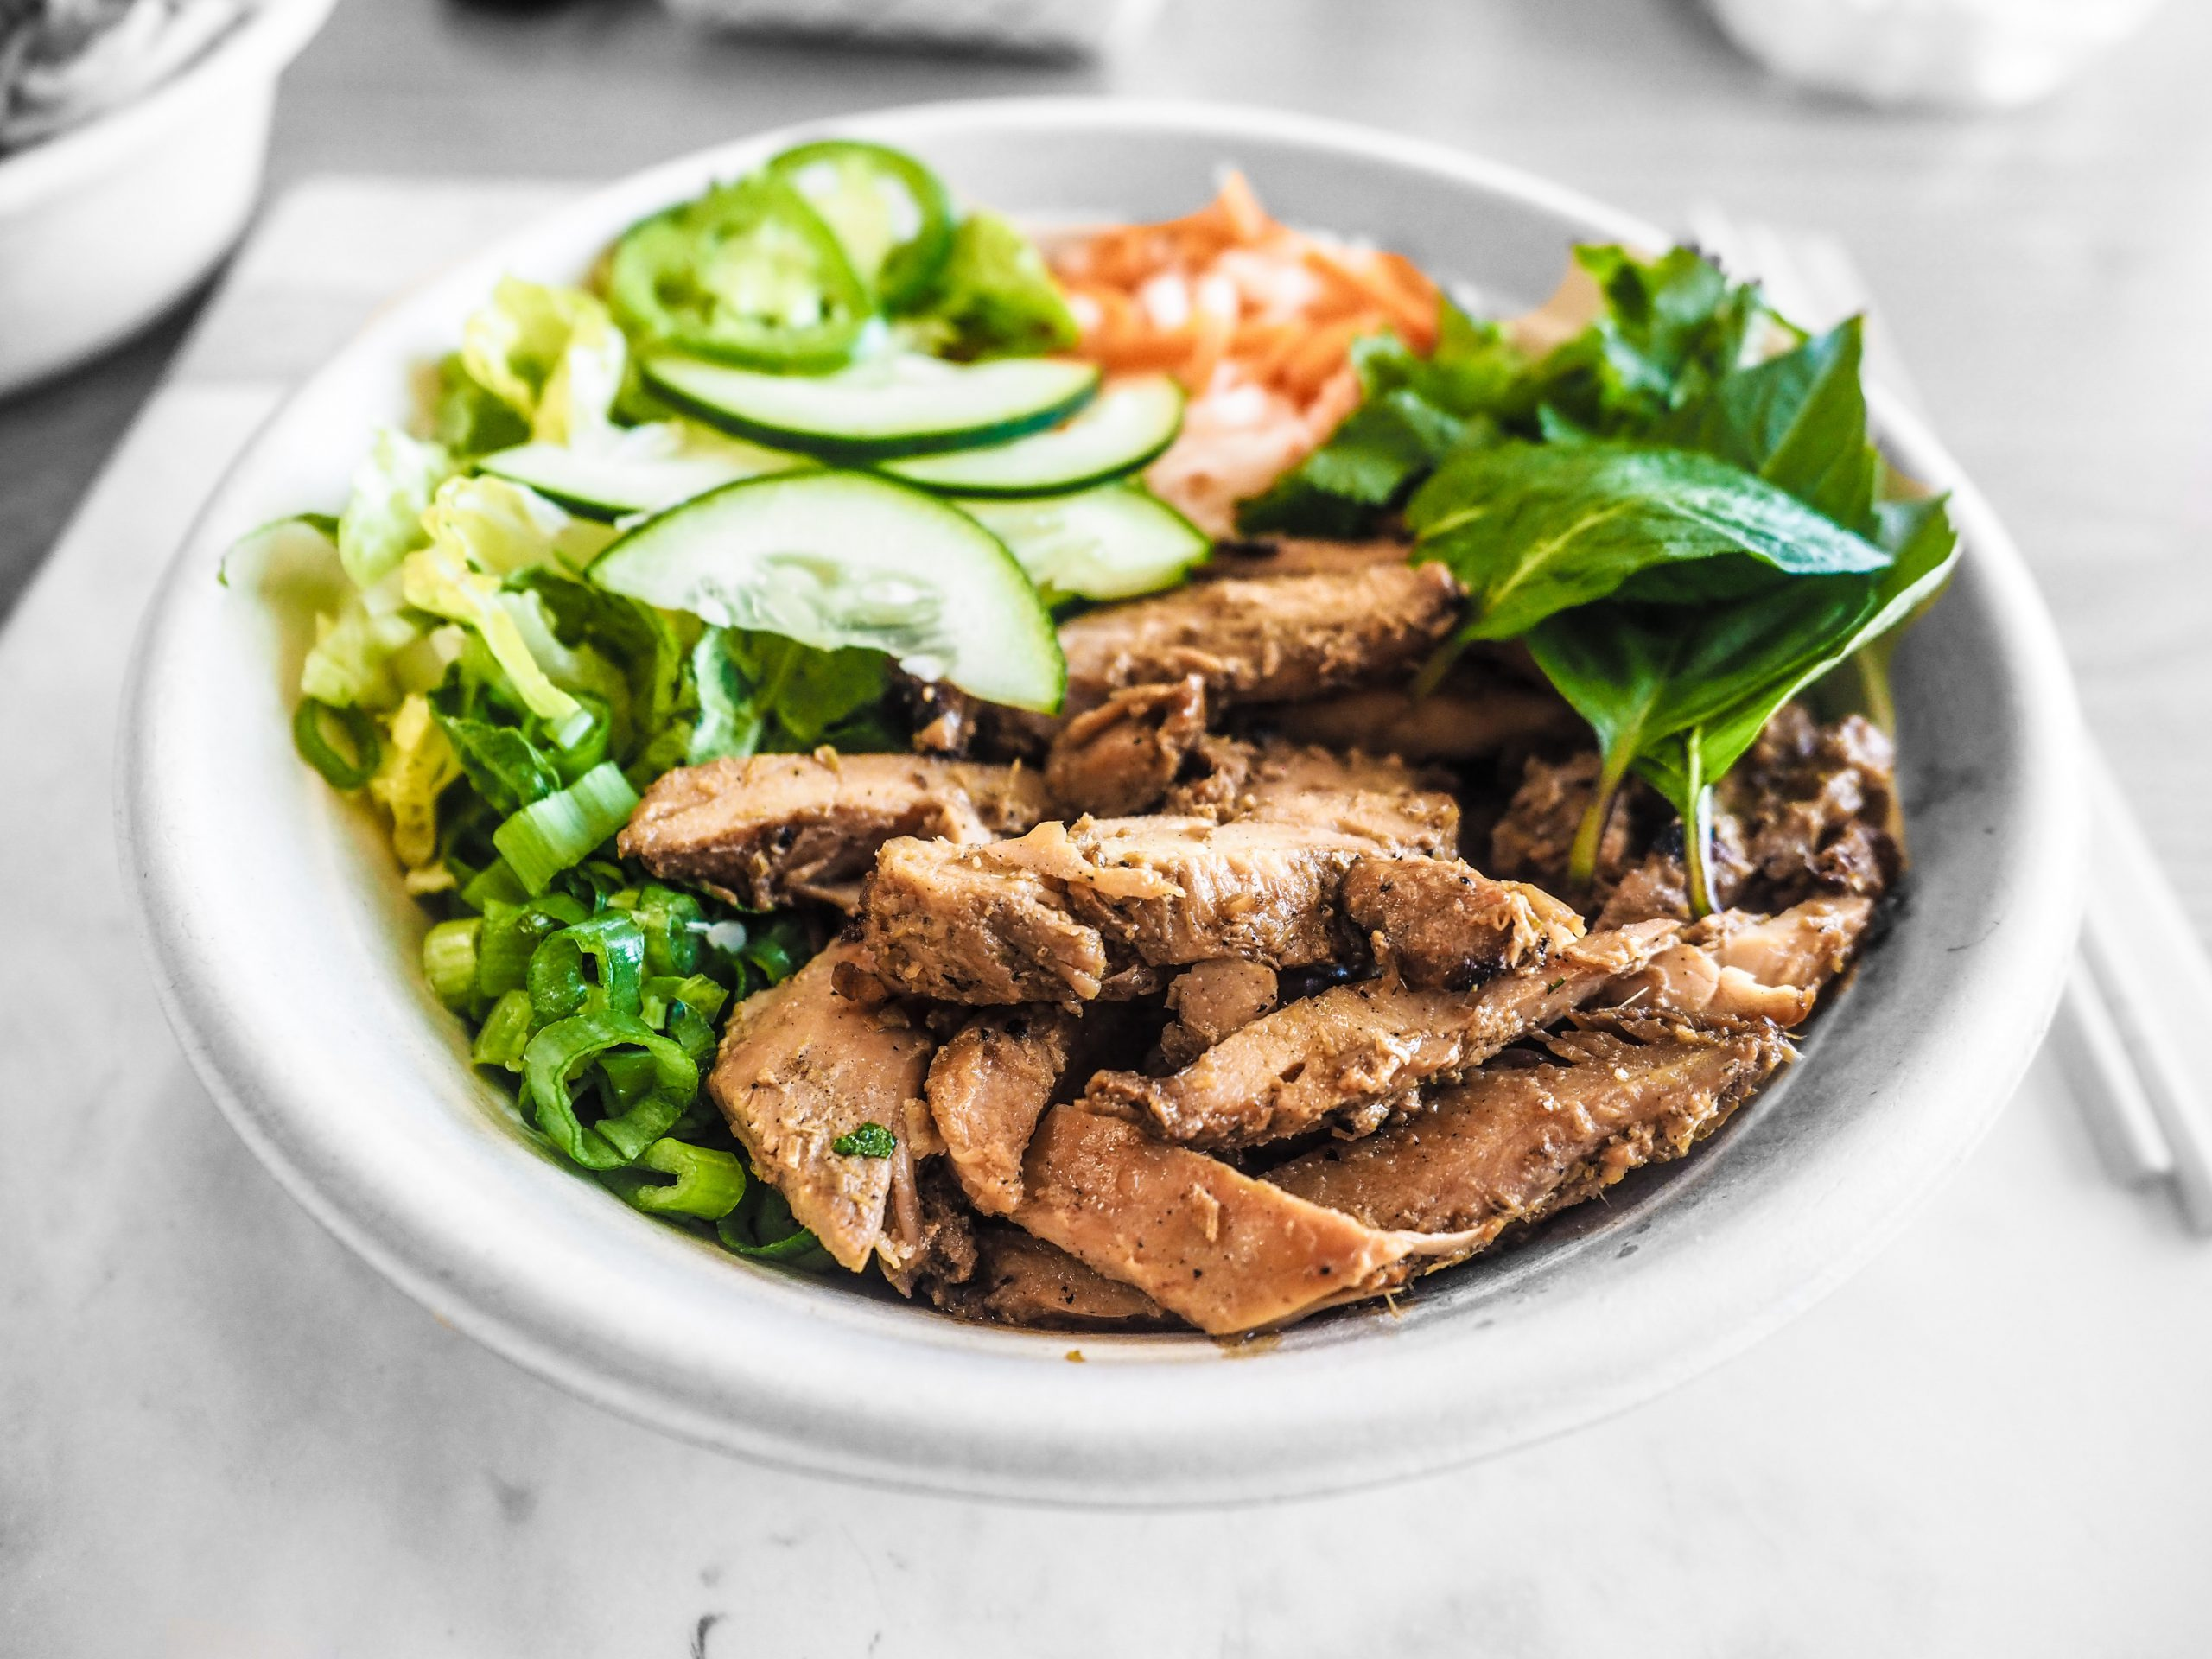 bowl-of-sliced-vegetables-and-meat-2059150